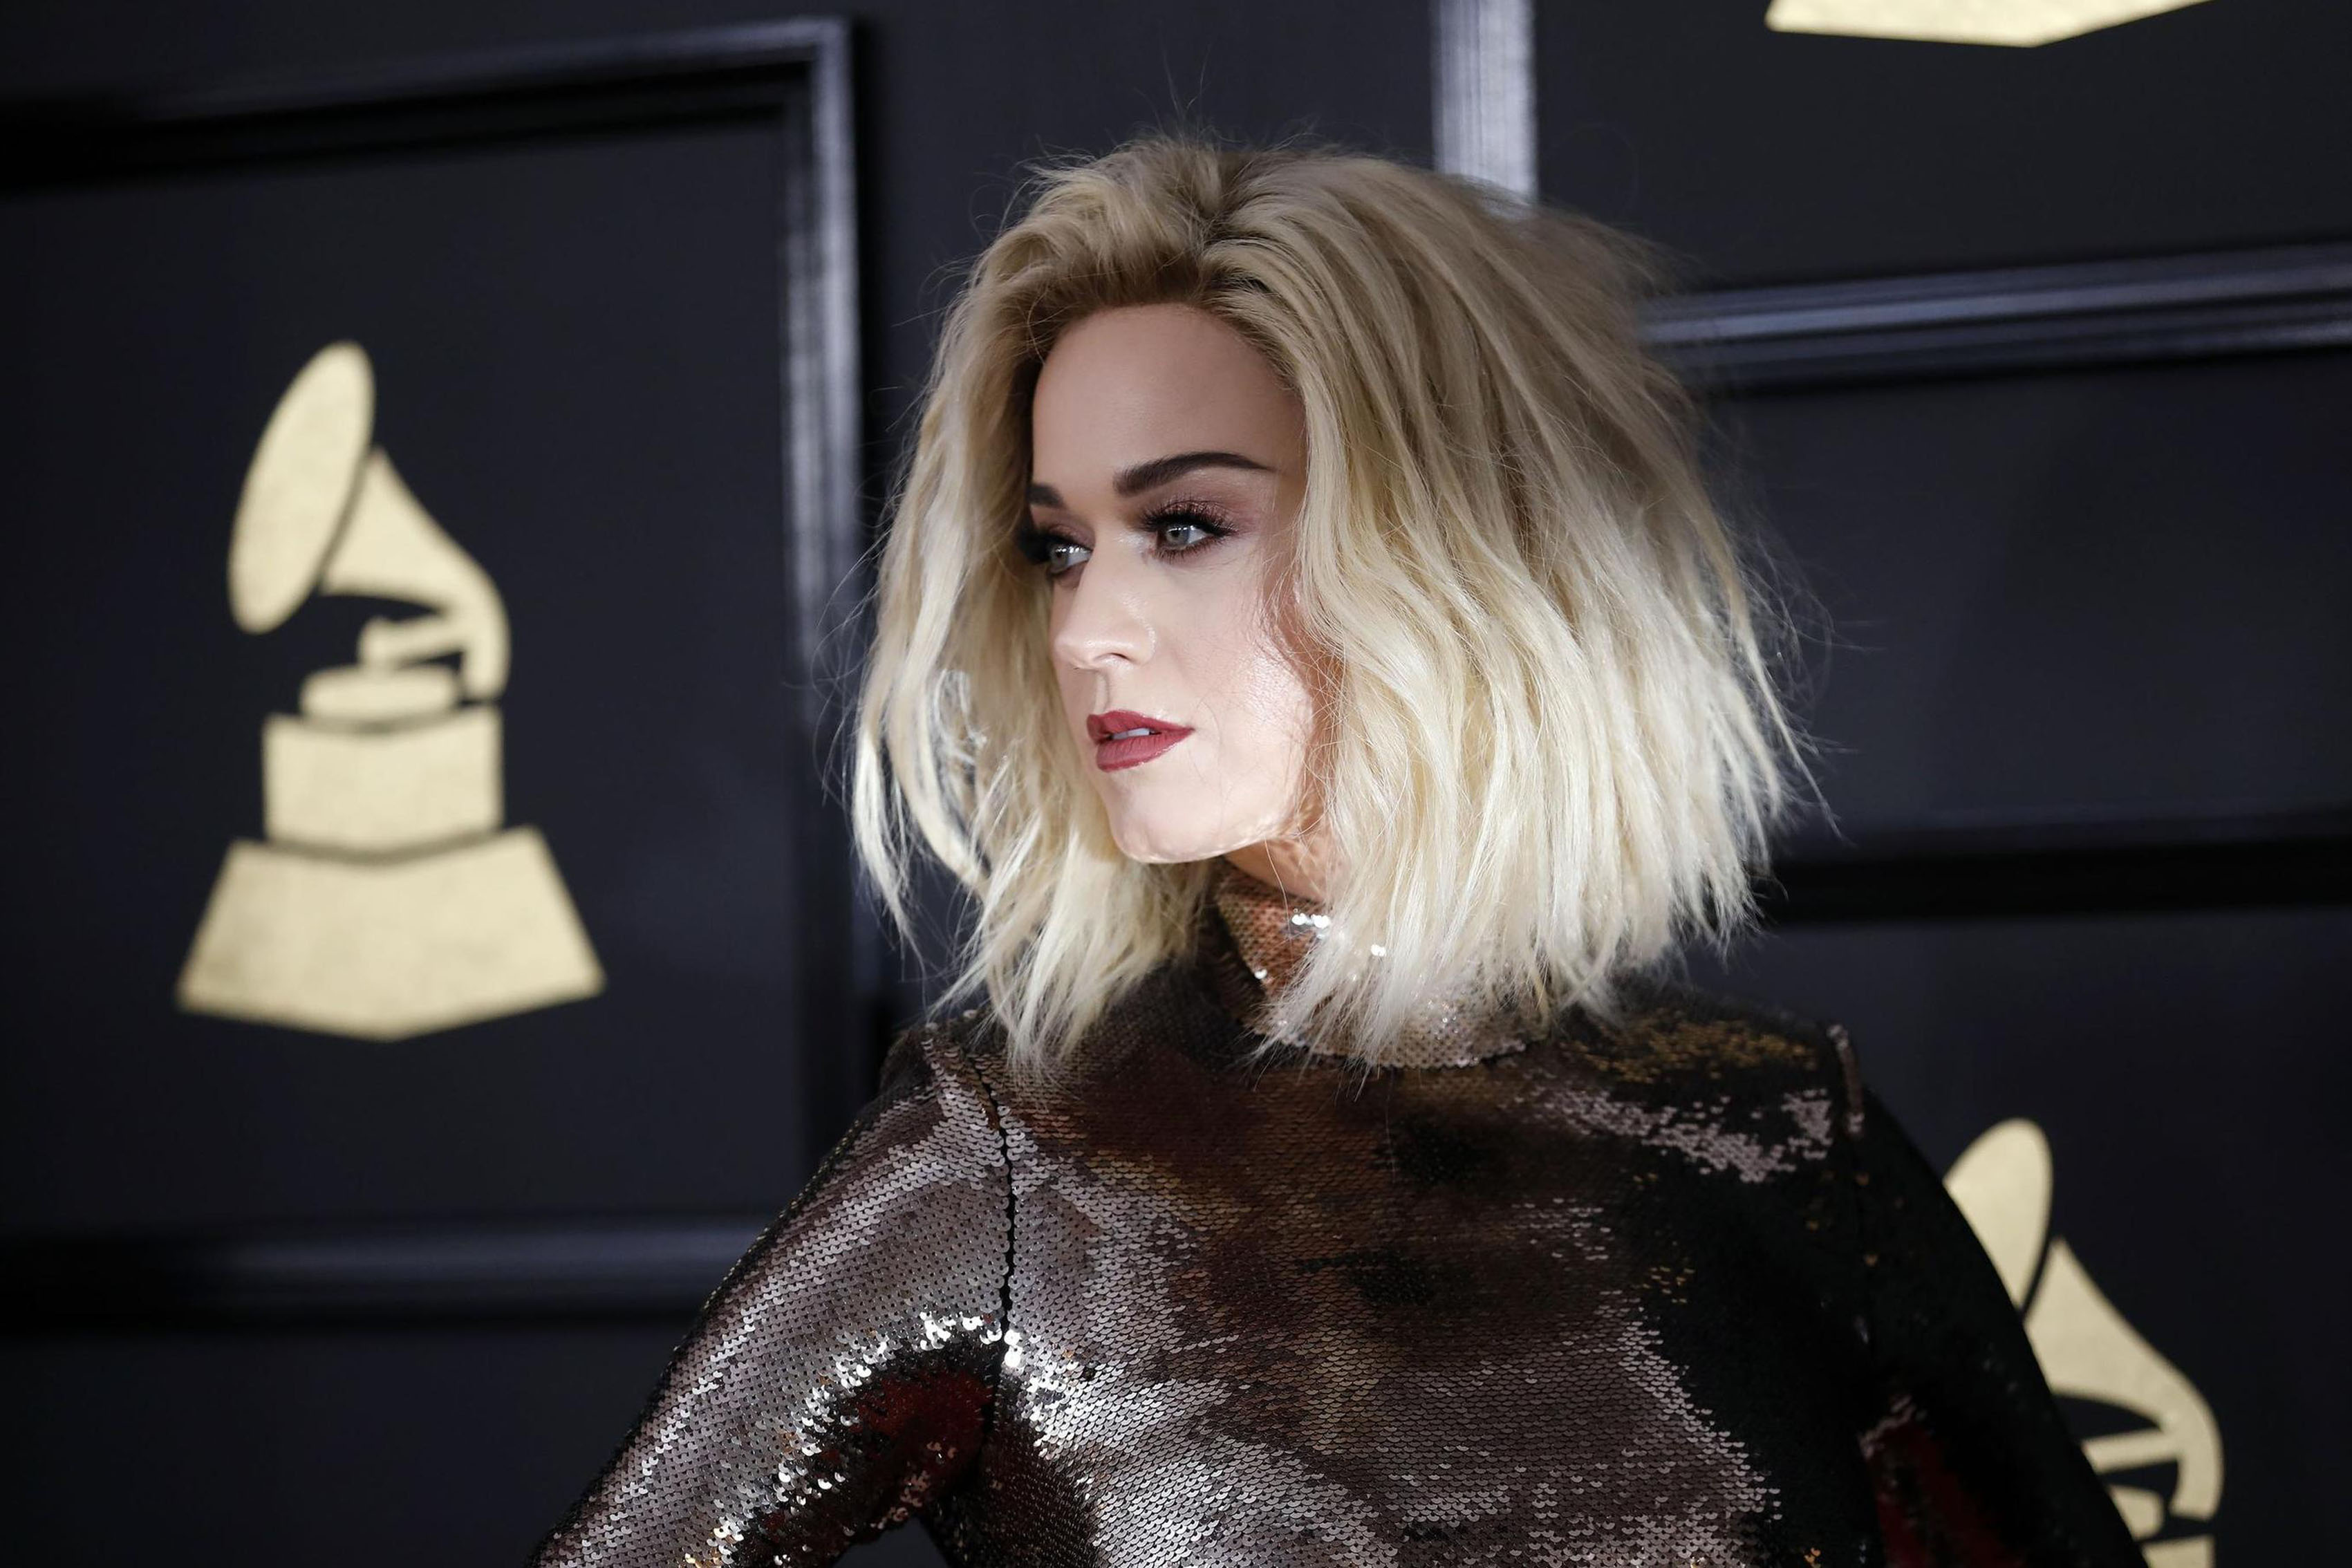 Celebrity singer face Katy Perry blonde MM727 Living room home art ...